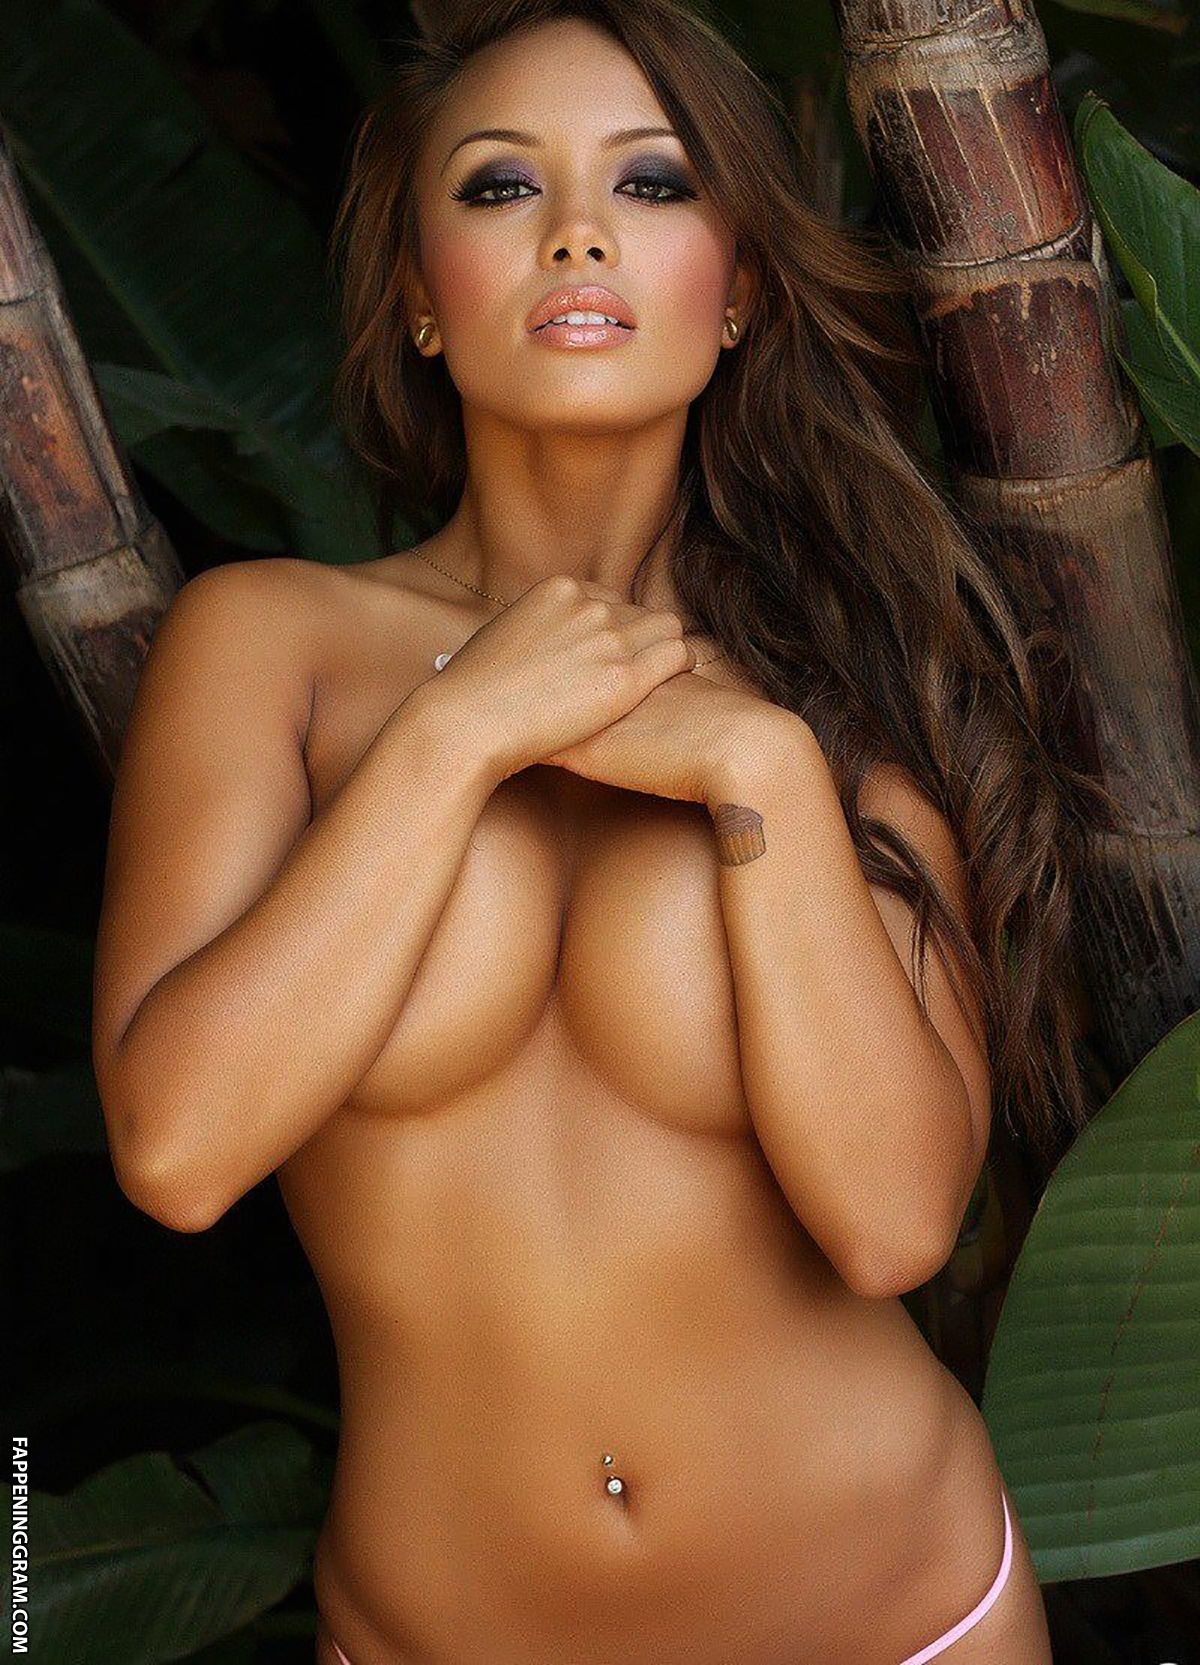 Materials Milf Queen Asian Model Justene Jaro Poses Non Nude In A Tank Top And Black Panties